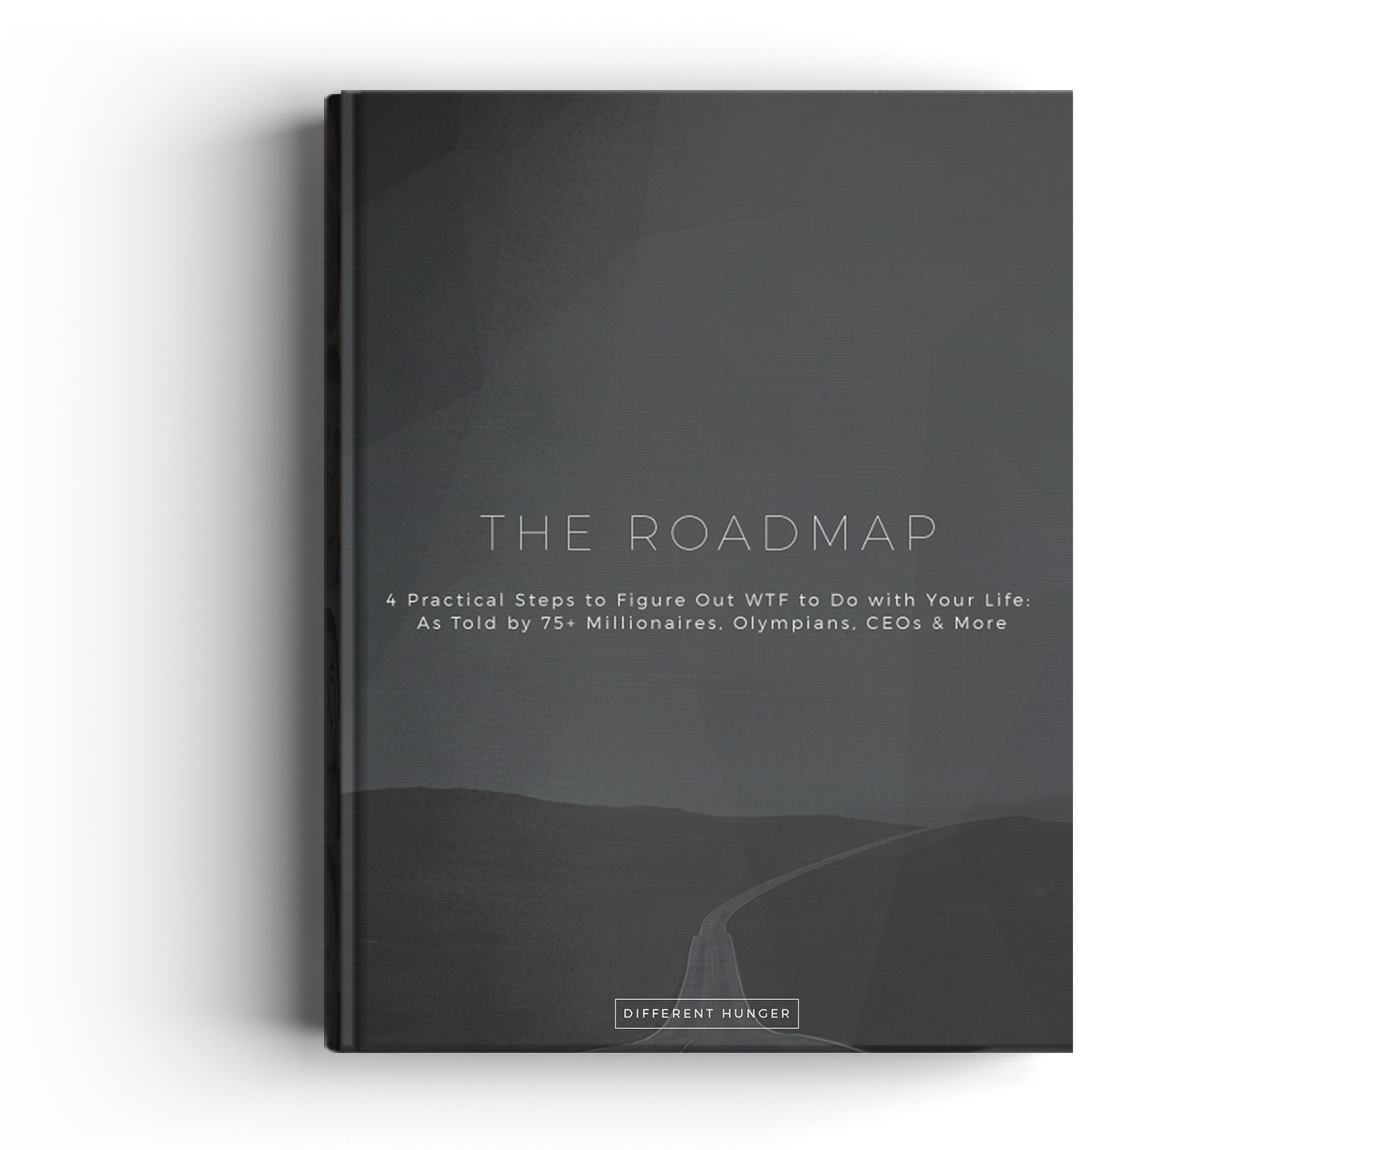 Roadmap_BookCover